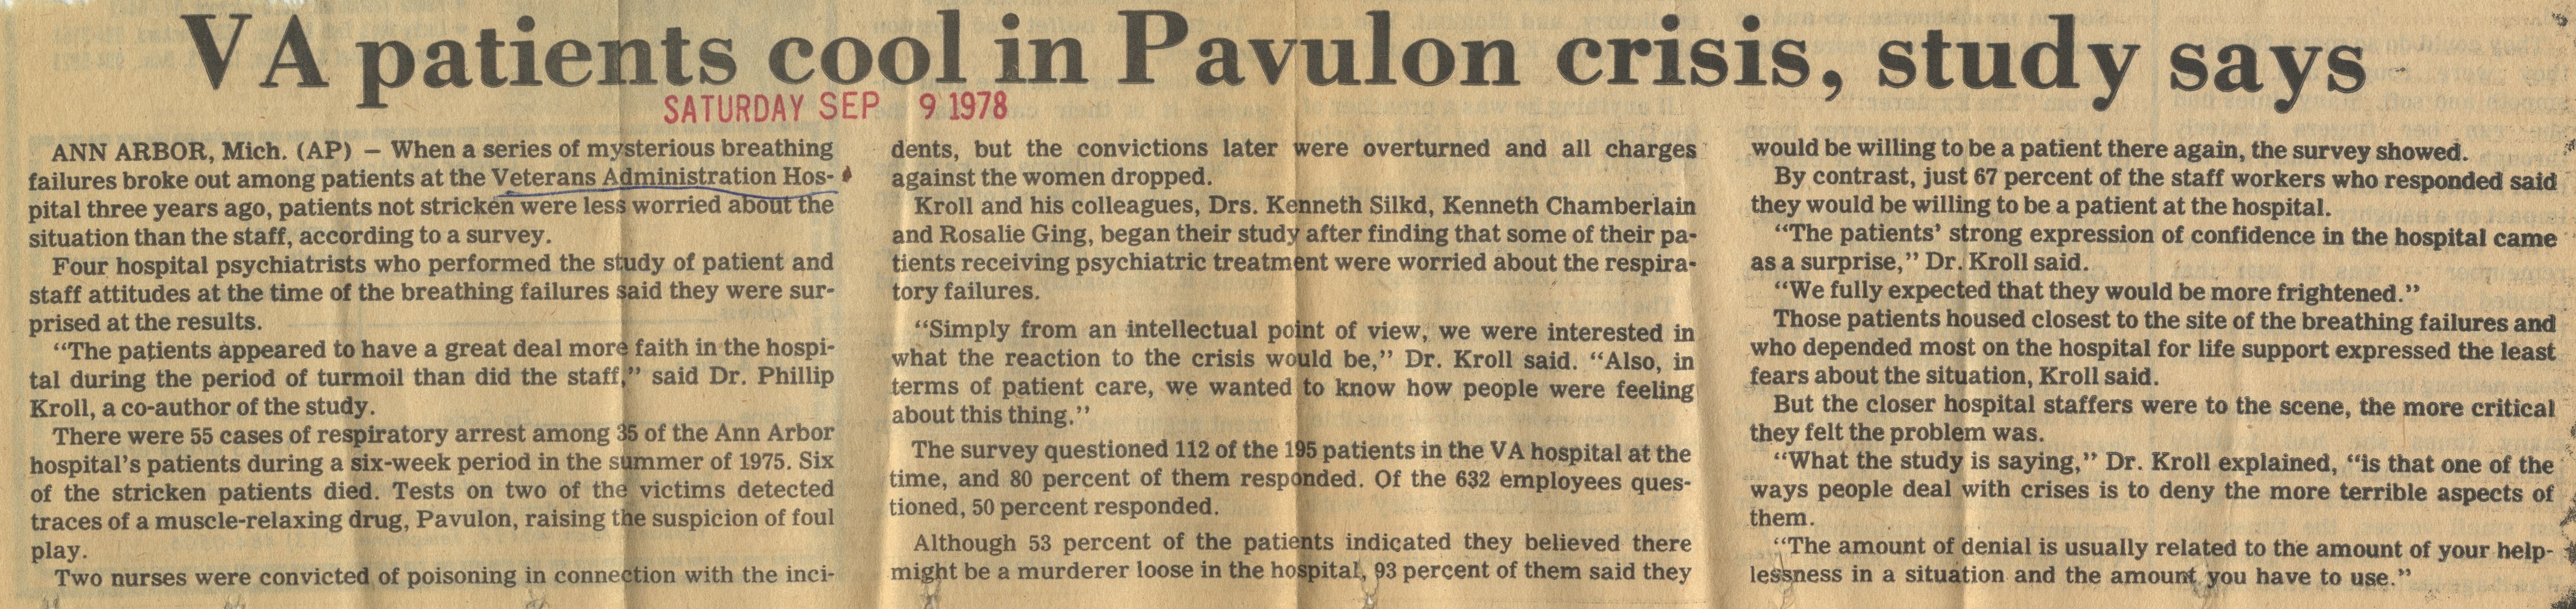 VA Patients Cool In Pavulon Crisis, Study Says image